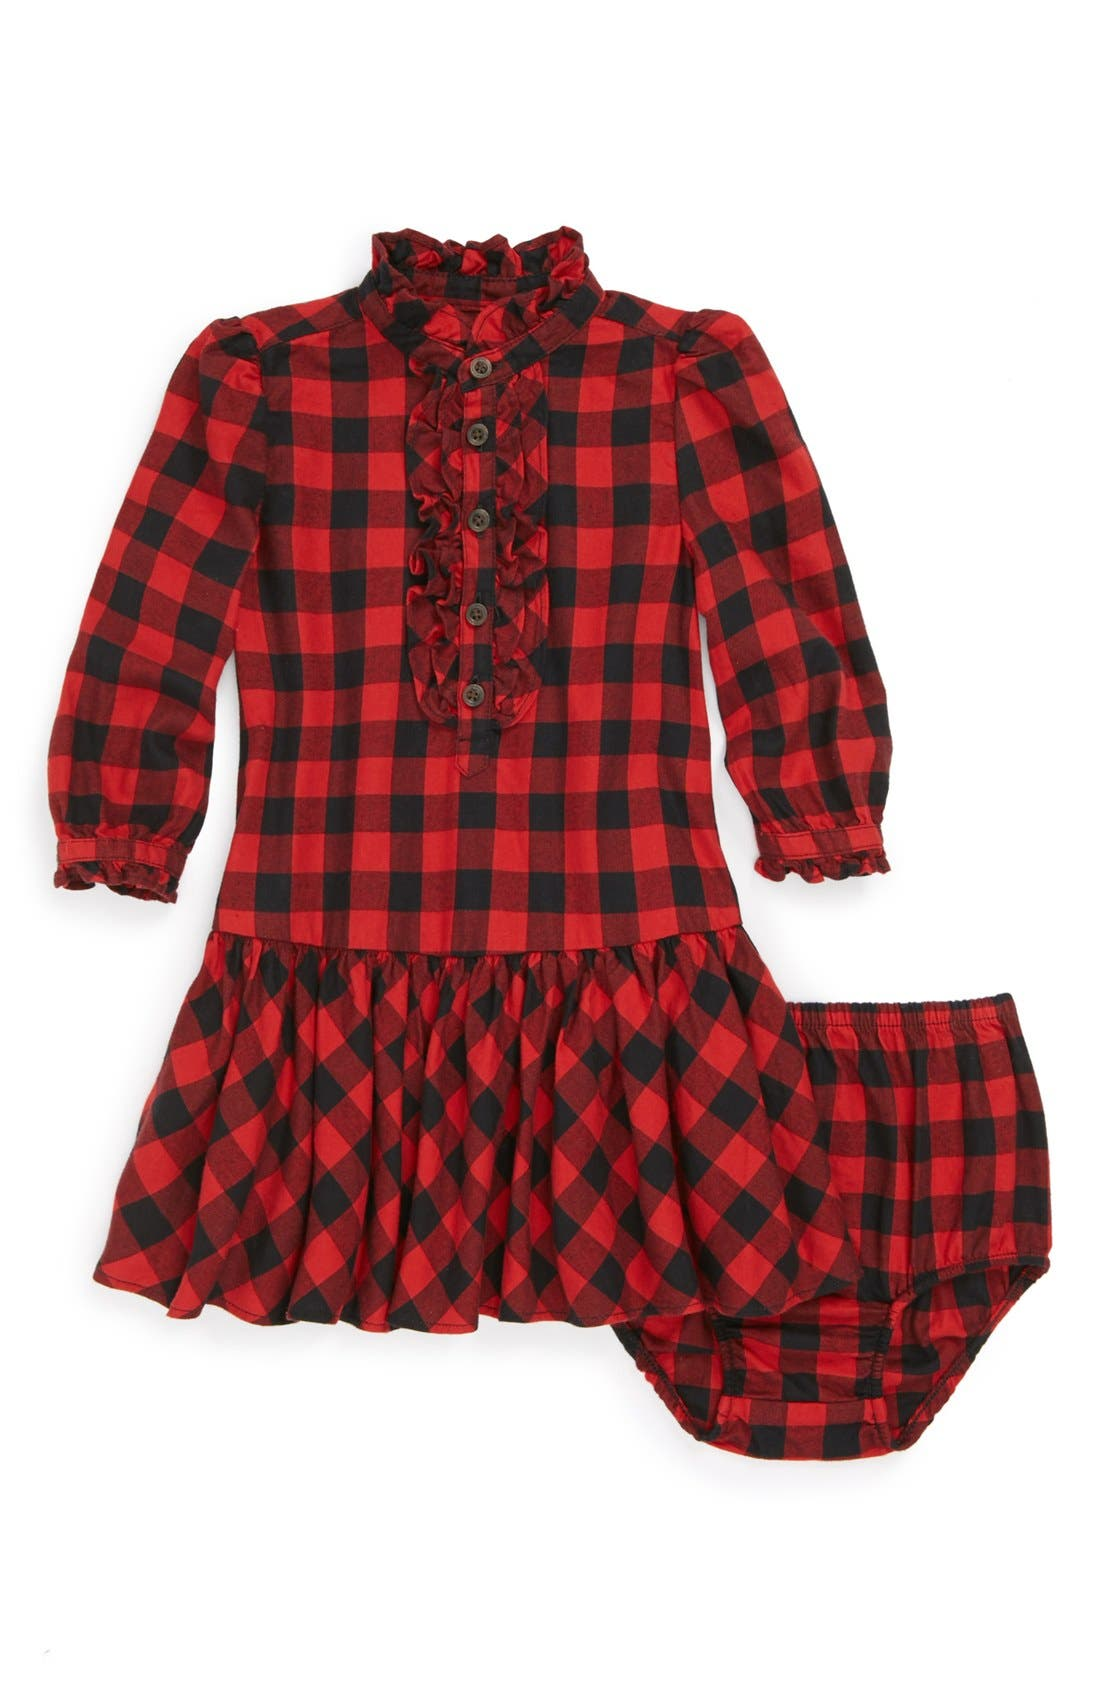 Main Image - Ralph Lauren Plaid Dress & Bloomers (Baby Girls)